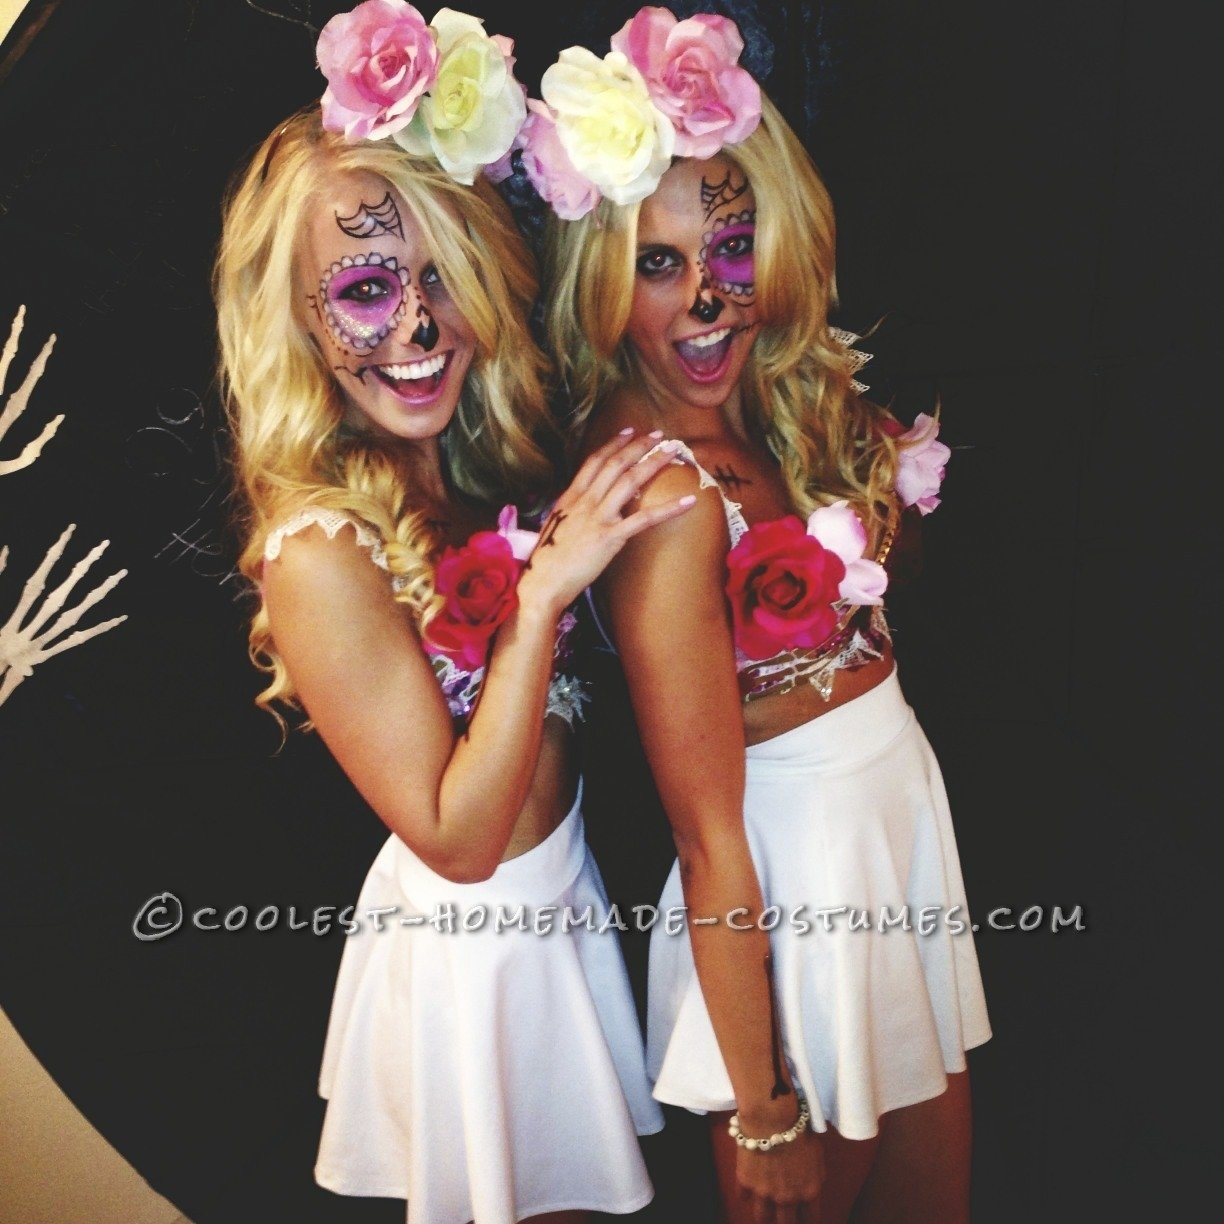 10 Great Halloween Costume Ideas For Blondes sexy sugar skulls cross bone blondes costumes homemade costumes 2020